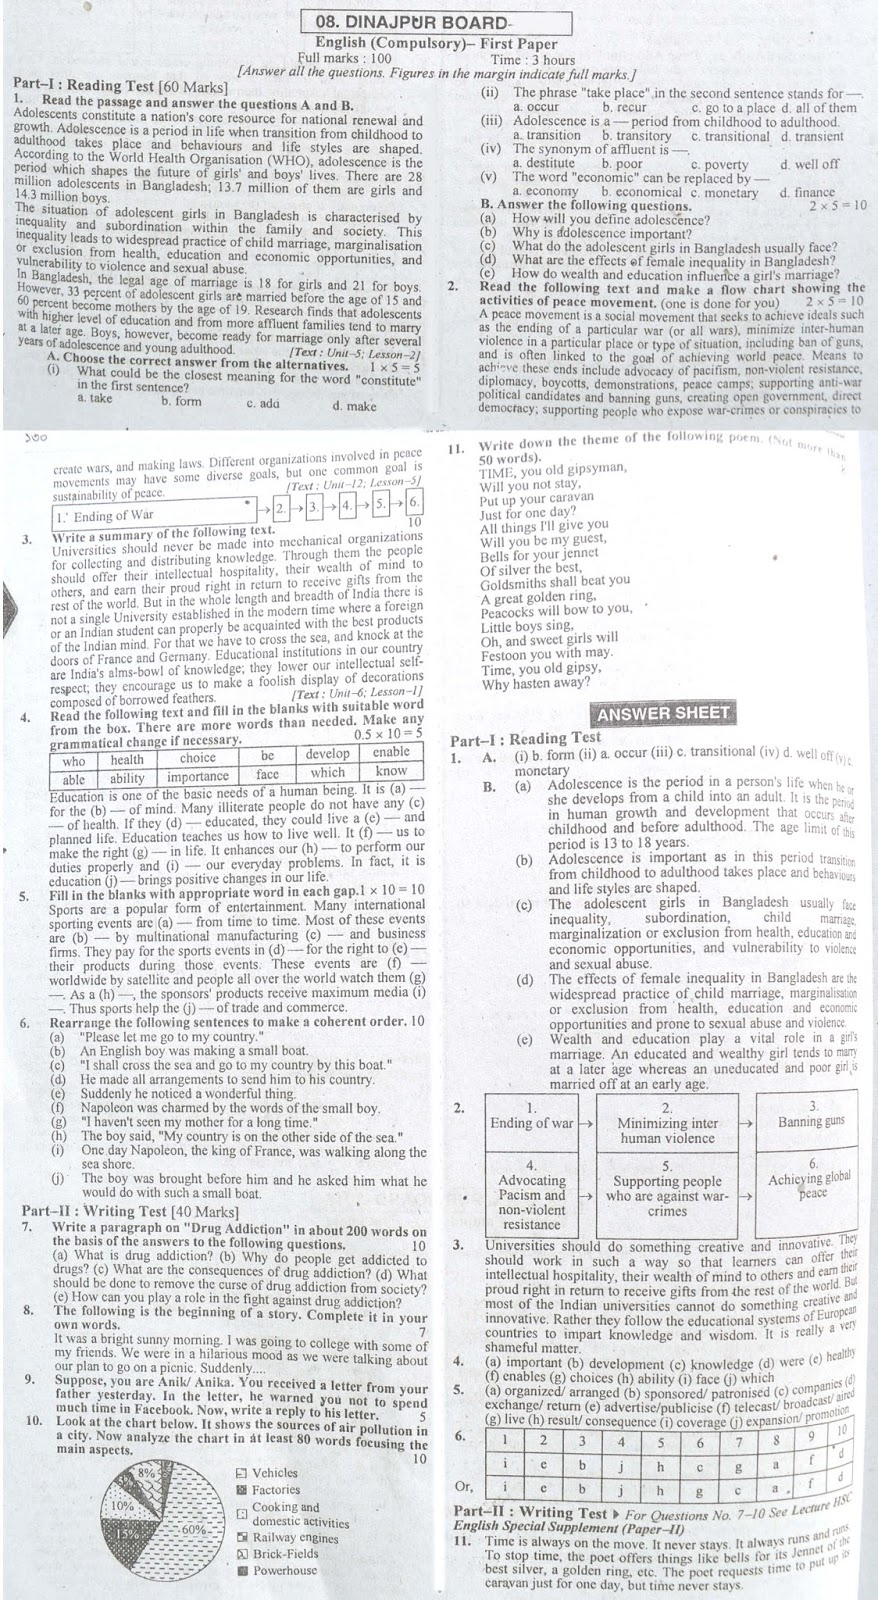 hsc english 1st Paper suggestion, exam question paper, model question, mcq question, question pattern, preparation for dhaka board, all boards